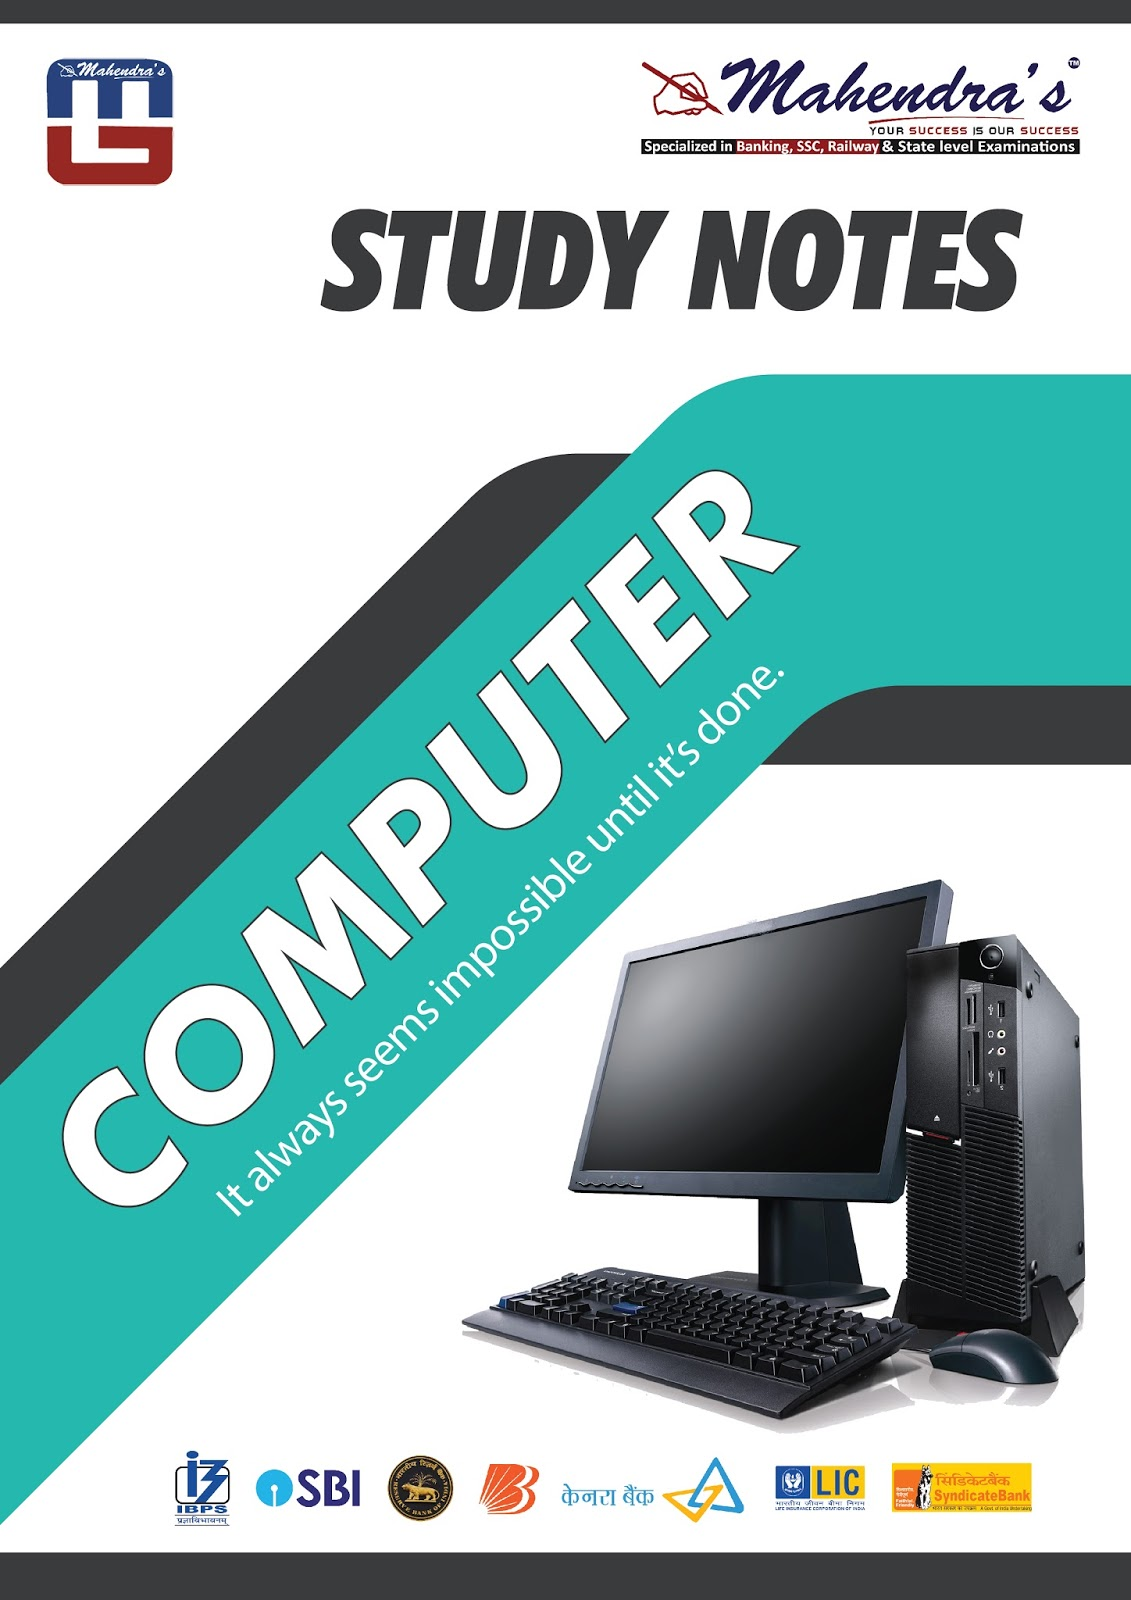 Study Notes Basics Of Computer For All Competitive Exams 02 03 18